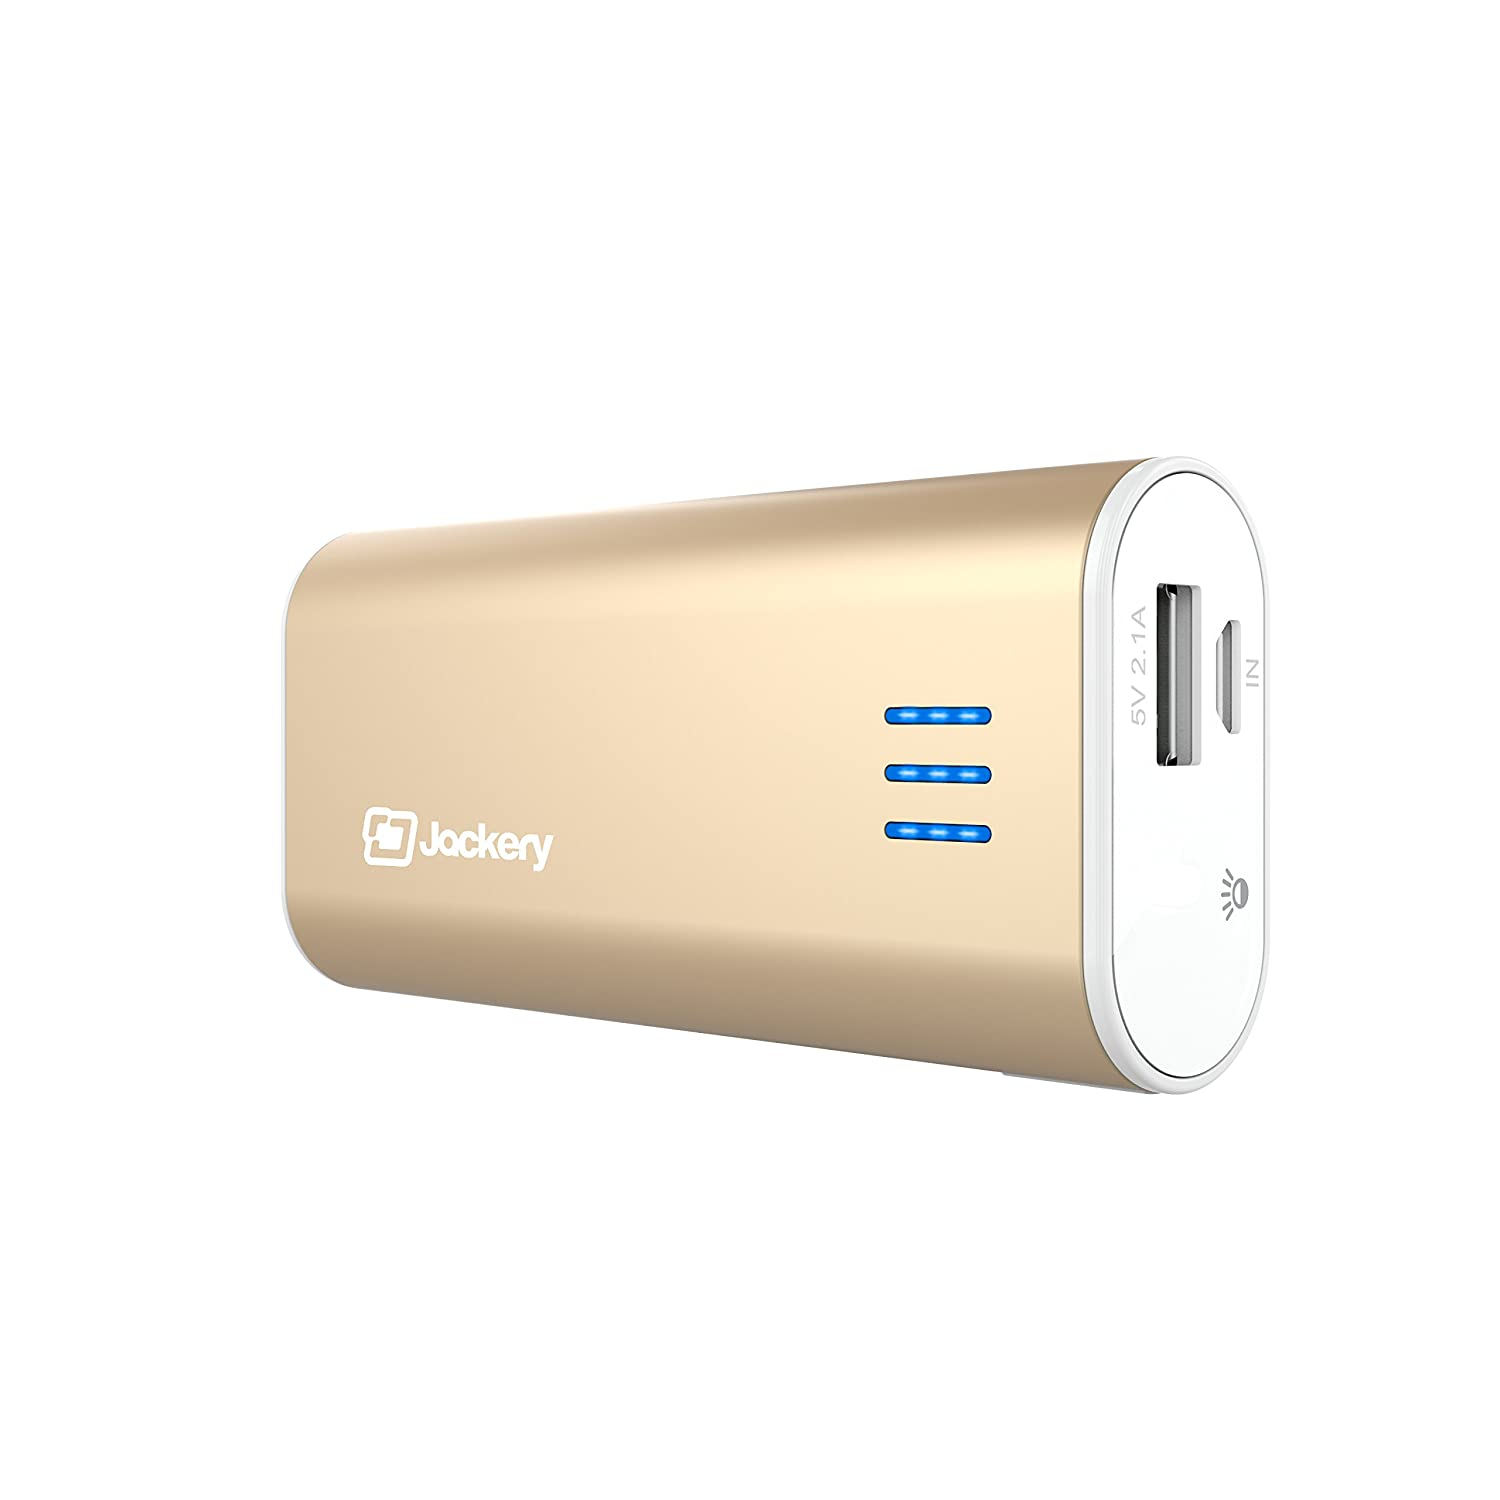 Jackery Bar External Battery Charger - Portable Charger and Power Bank for iPhone 6s, 6s Plus, 6 Plus, 5, iPad Air, iPad Pro, Samsung Galaxy S6, S5 & Other Smart Devices - 6,000 mAh (Gold)